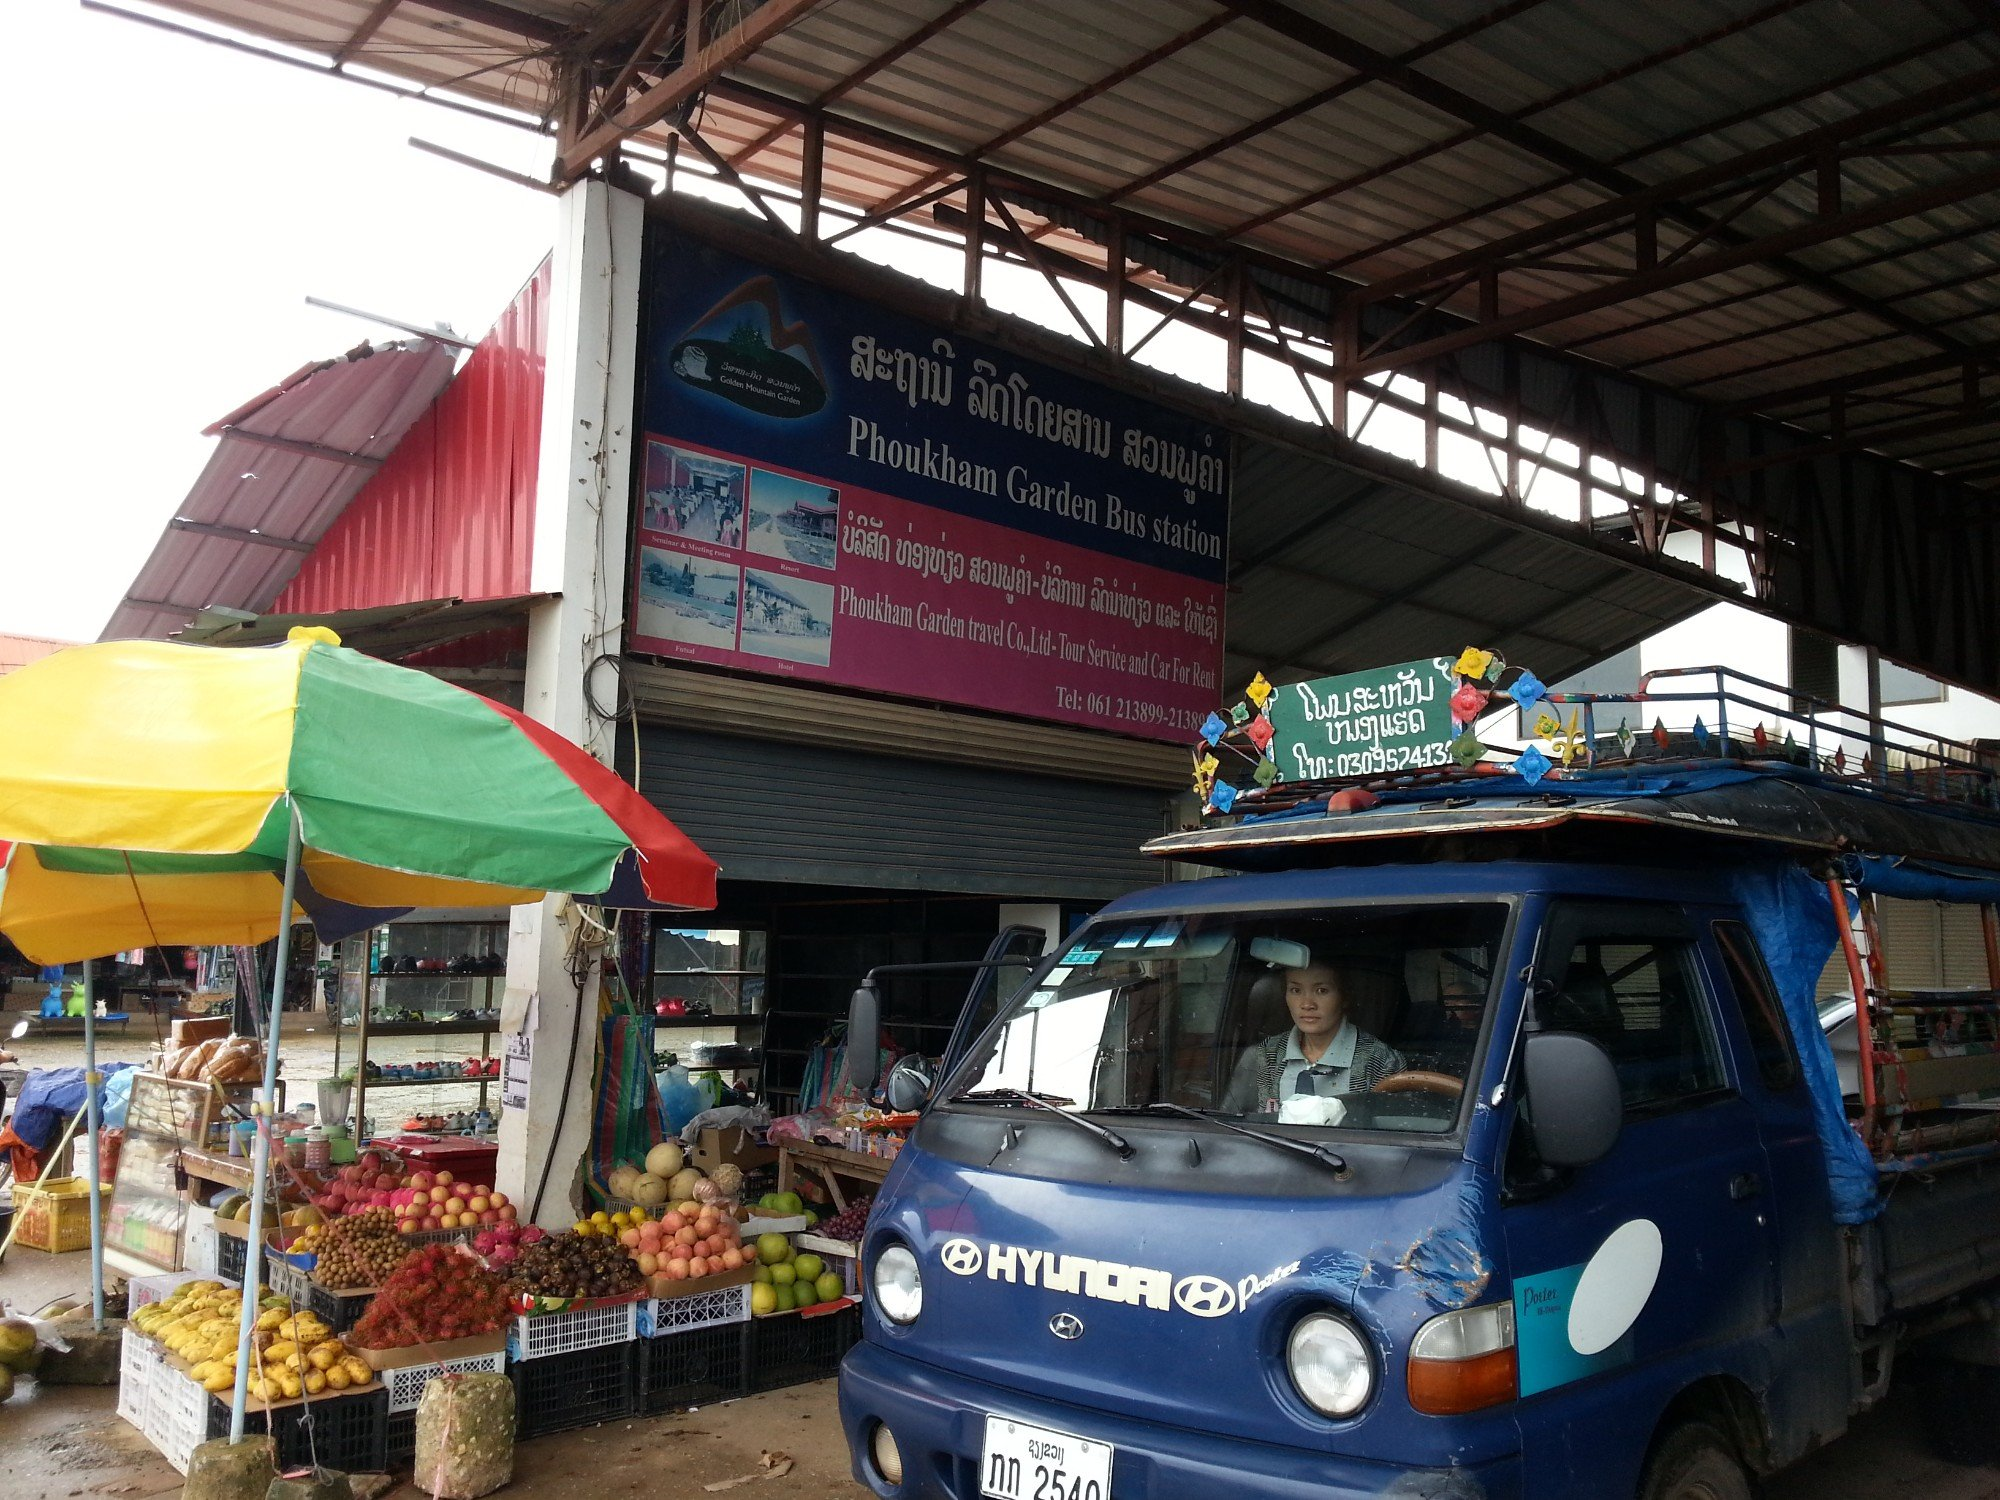 Short distance service at Phoukham Garden Bus Station